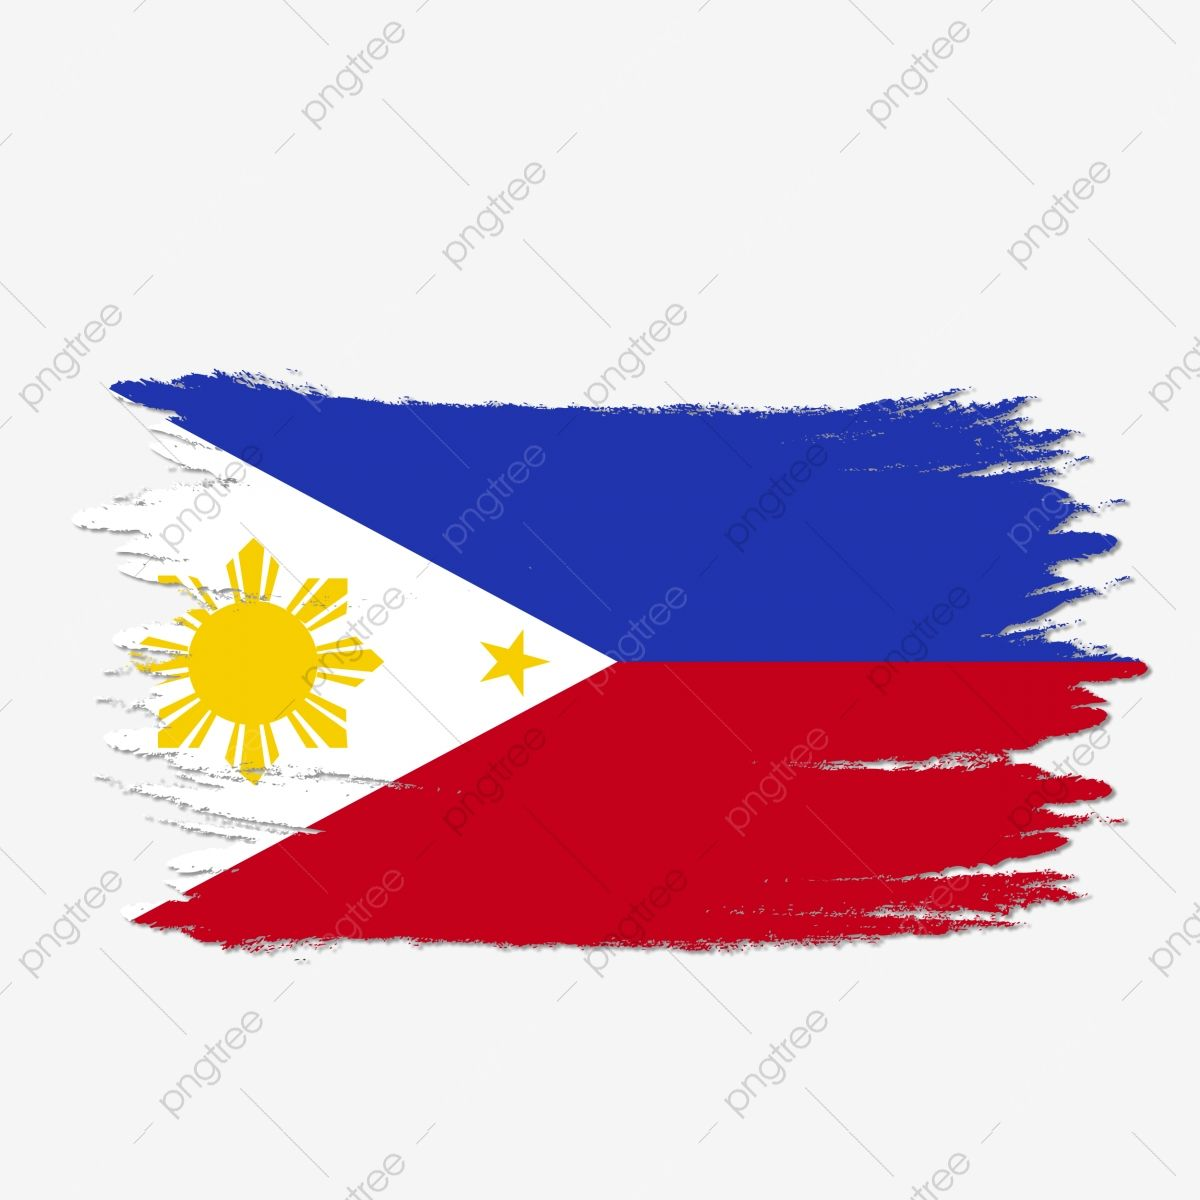 Philippines Flag Transparent Watercolor Painted Brush Art Clipart Philippines Philippines Flag Png Transpar In 2021 Philippine Flag Art Clipart Watercolour Painting